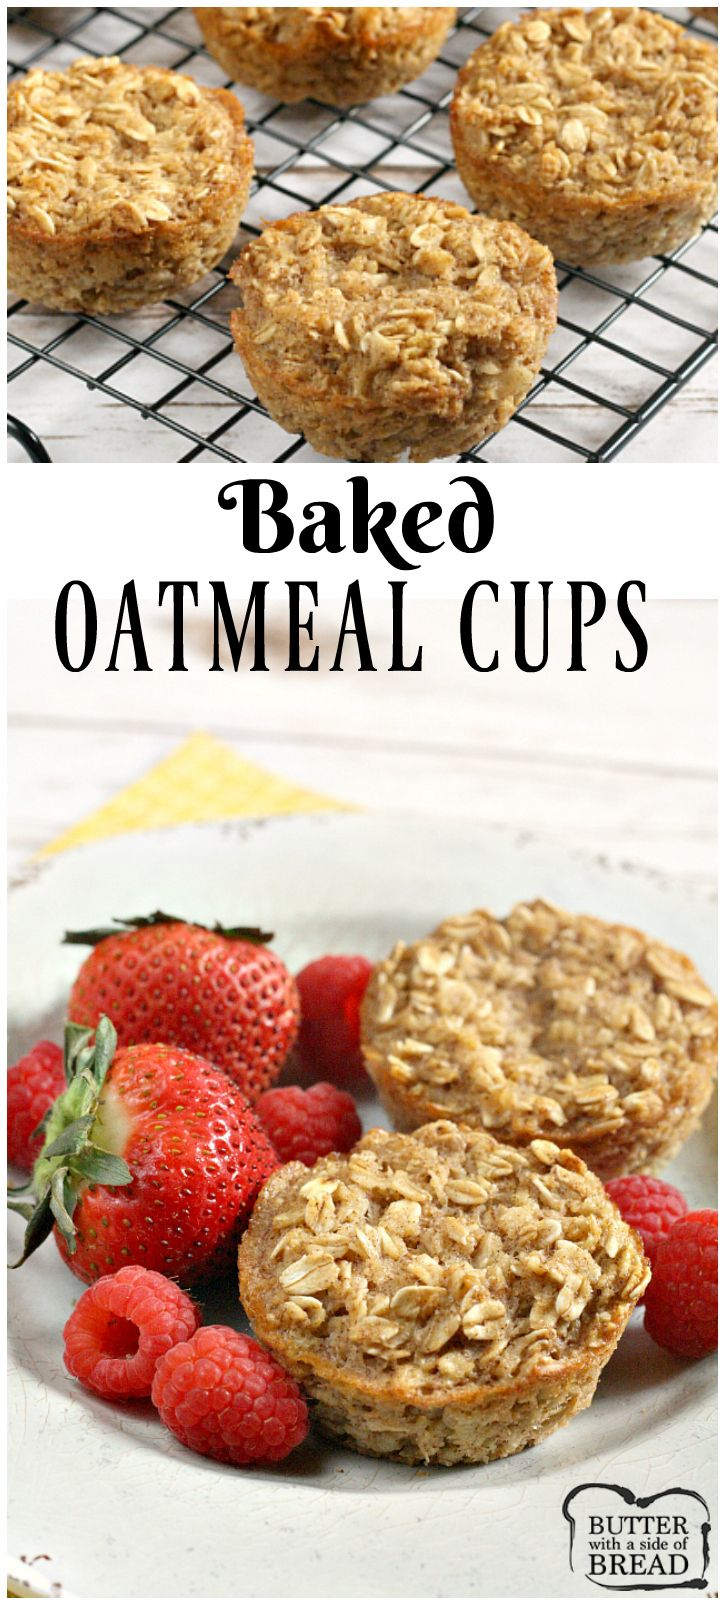 Baked Oatmeal Cups - an easy, delicious breakfast or snack perfect for anyone on the go! Easy, healthy recipe from Butter With a Side of Bread AD #InspiredGathering